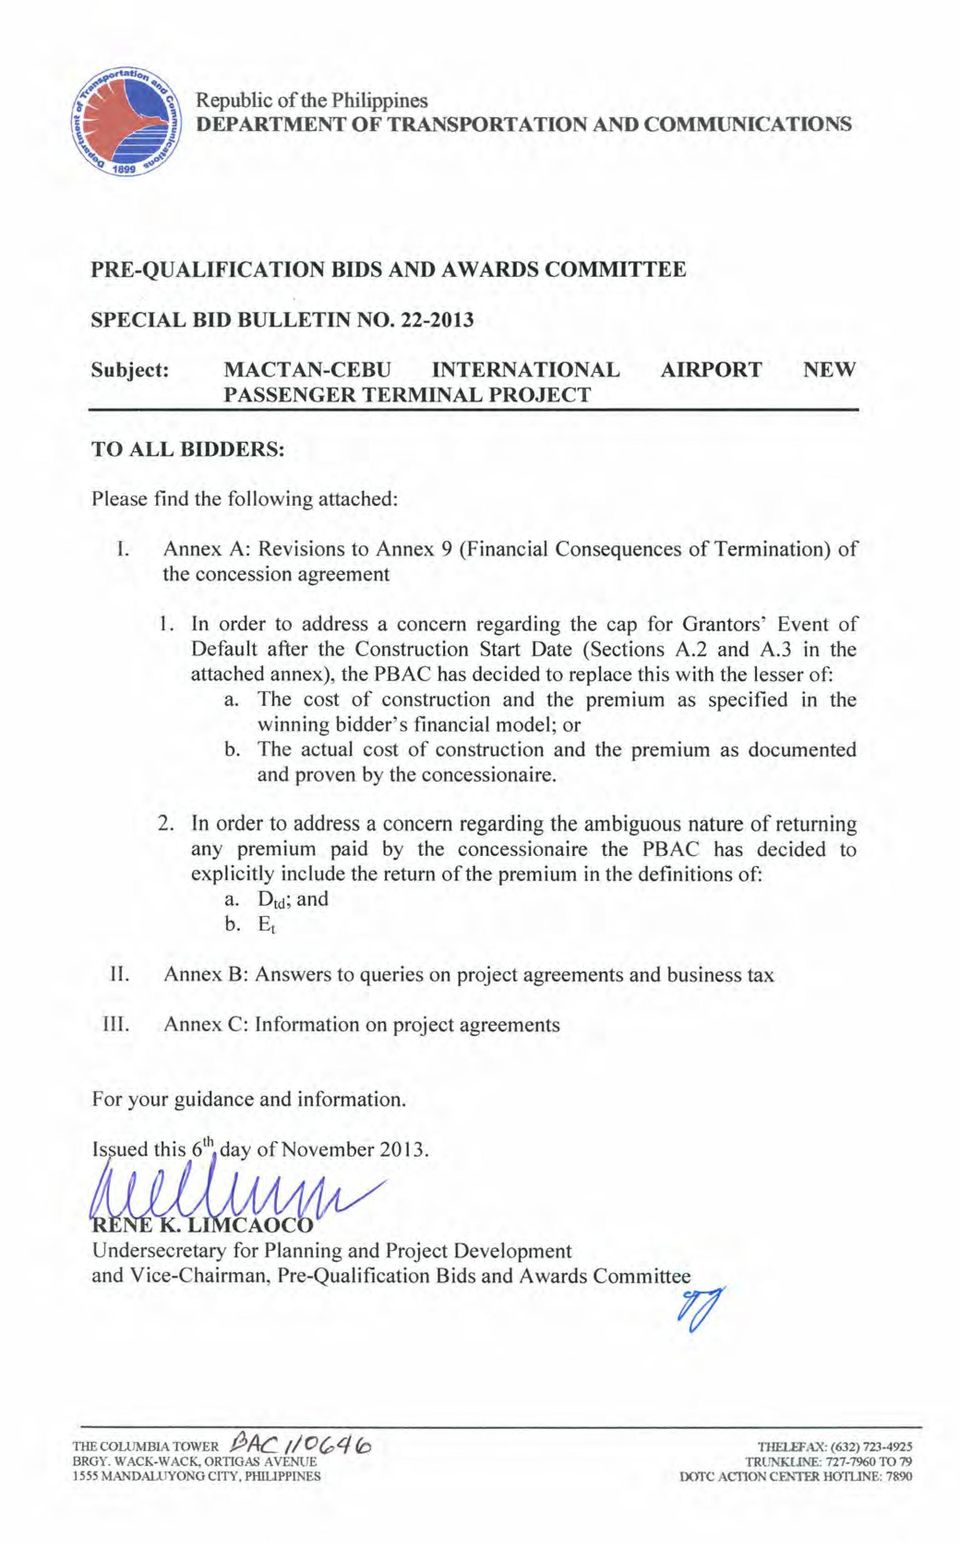 Annex A: Revisions to Annex 9 (Financial Consequences of Termination) of the concession agreement I.